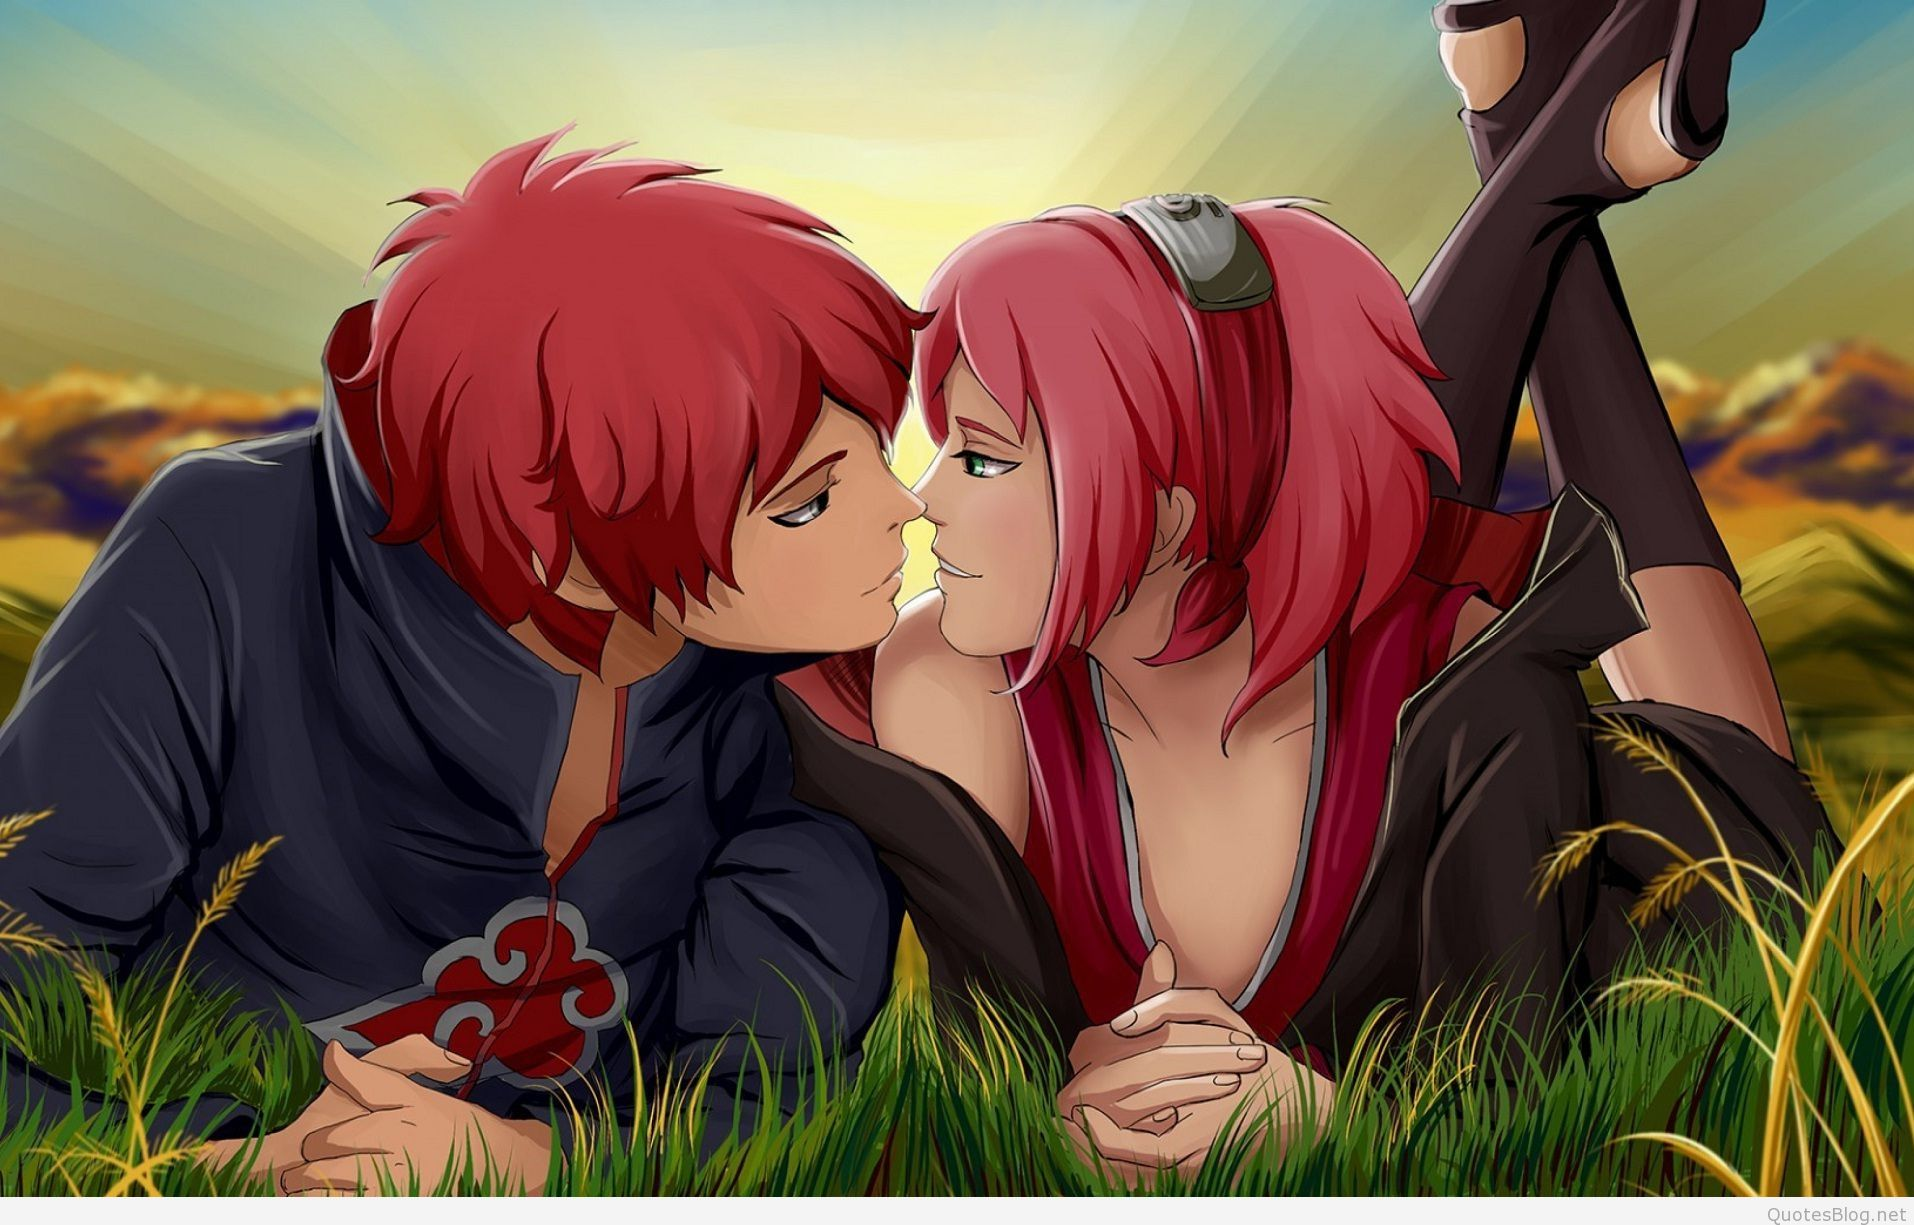 Love Animated Couple Wallpapers New Hd Love Animated - Cute Anime Couple , HD Wallpaper & Backgrounds